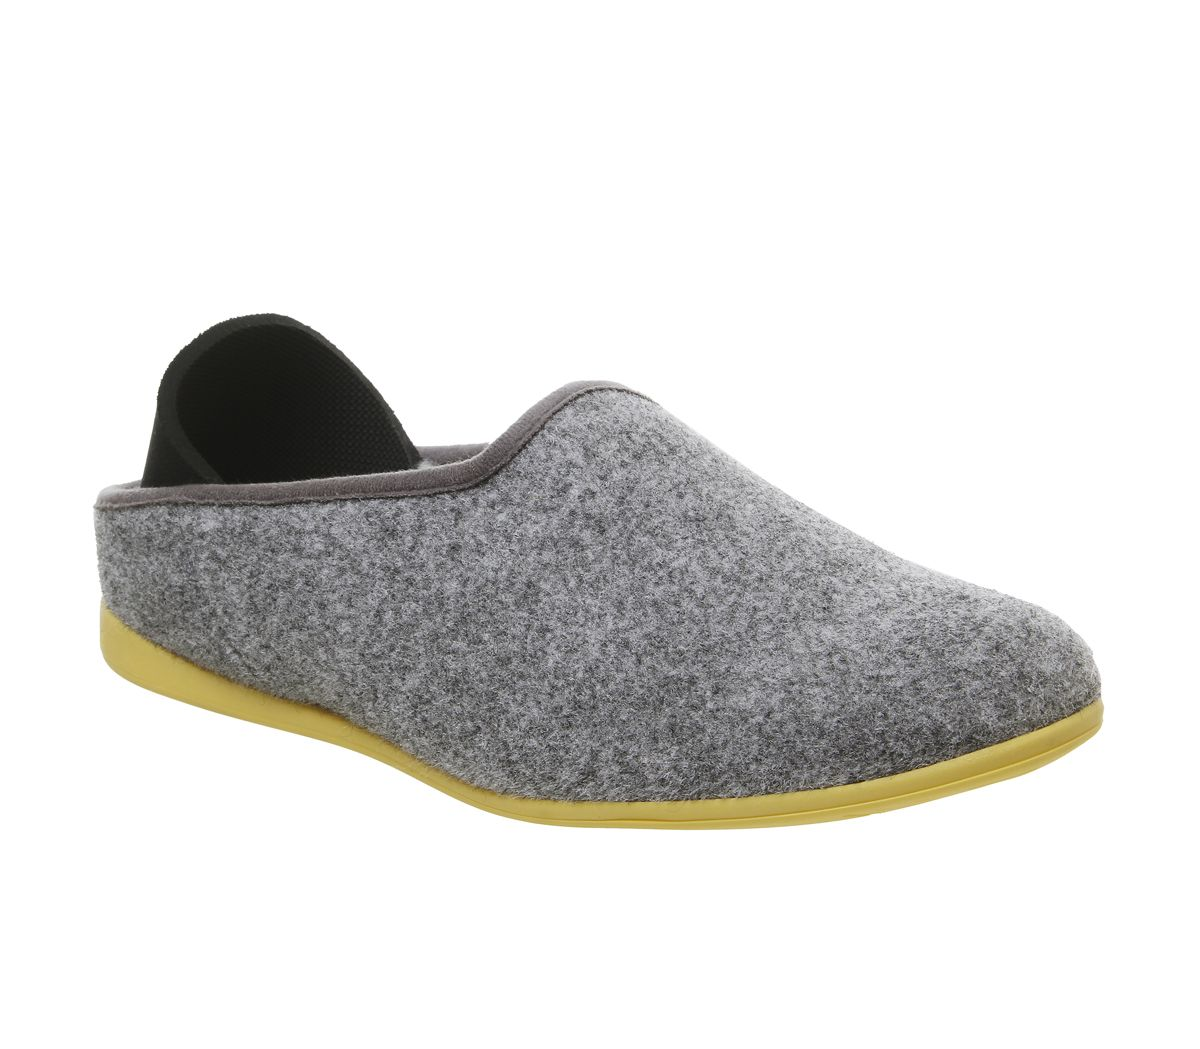 41864b81c1a1 Mahabis Mahabis Classic Slippers Larvik Light Grey Skane Yellow Sole ...